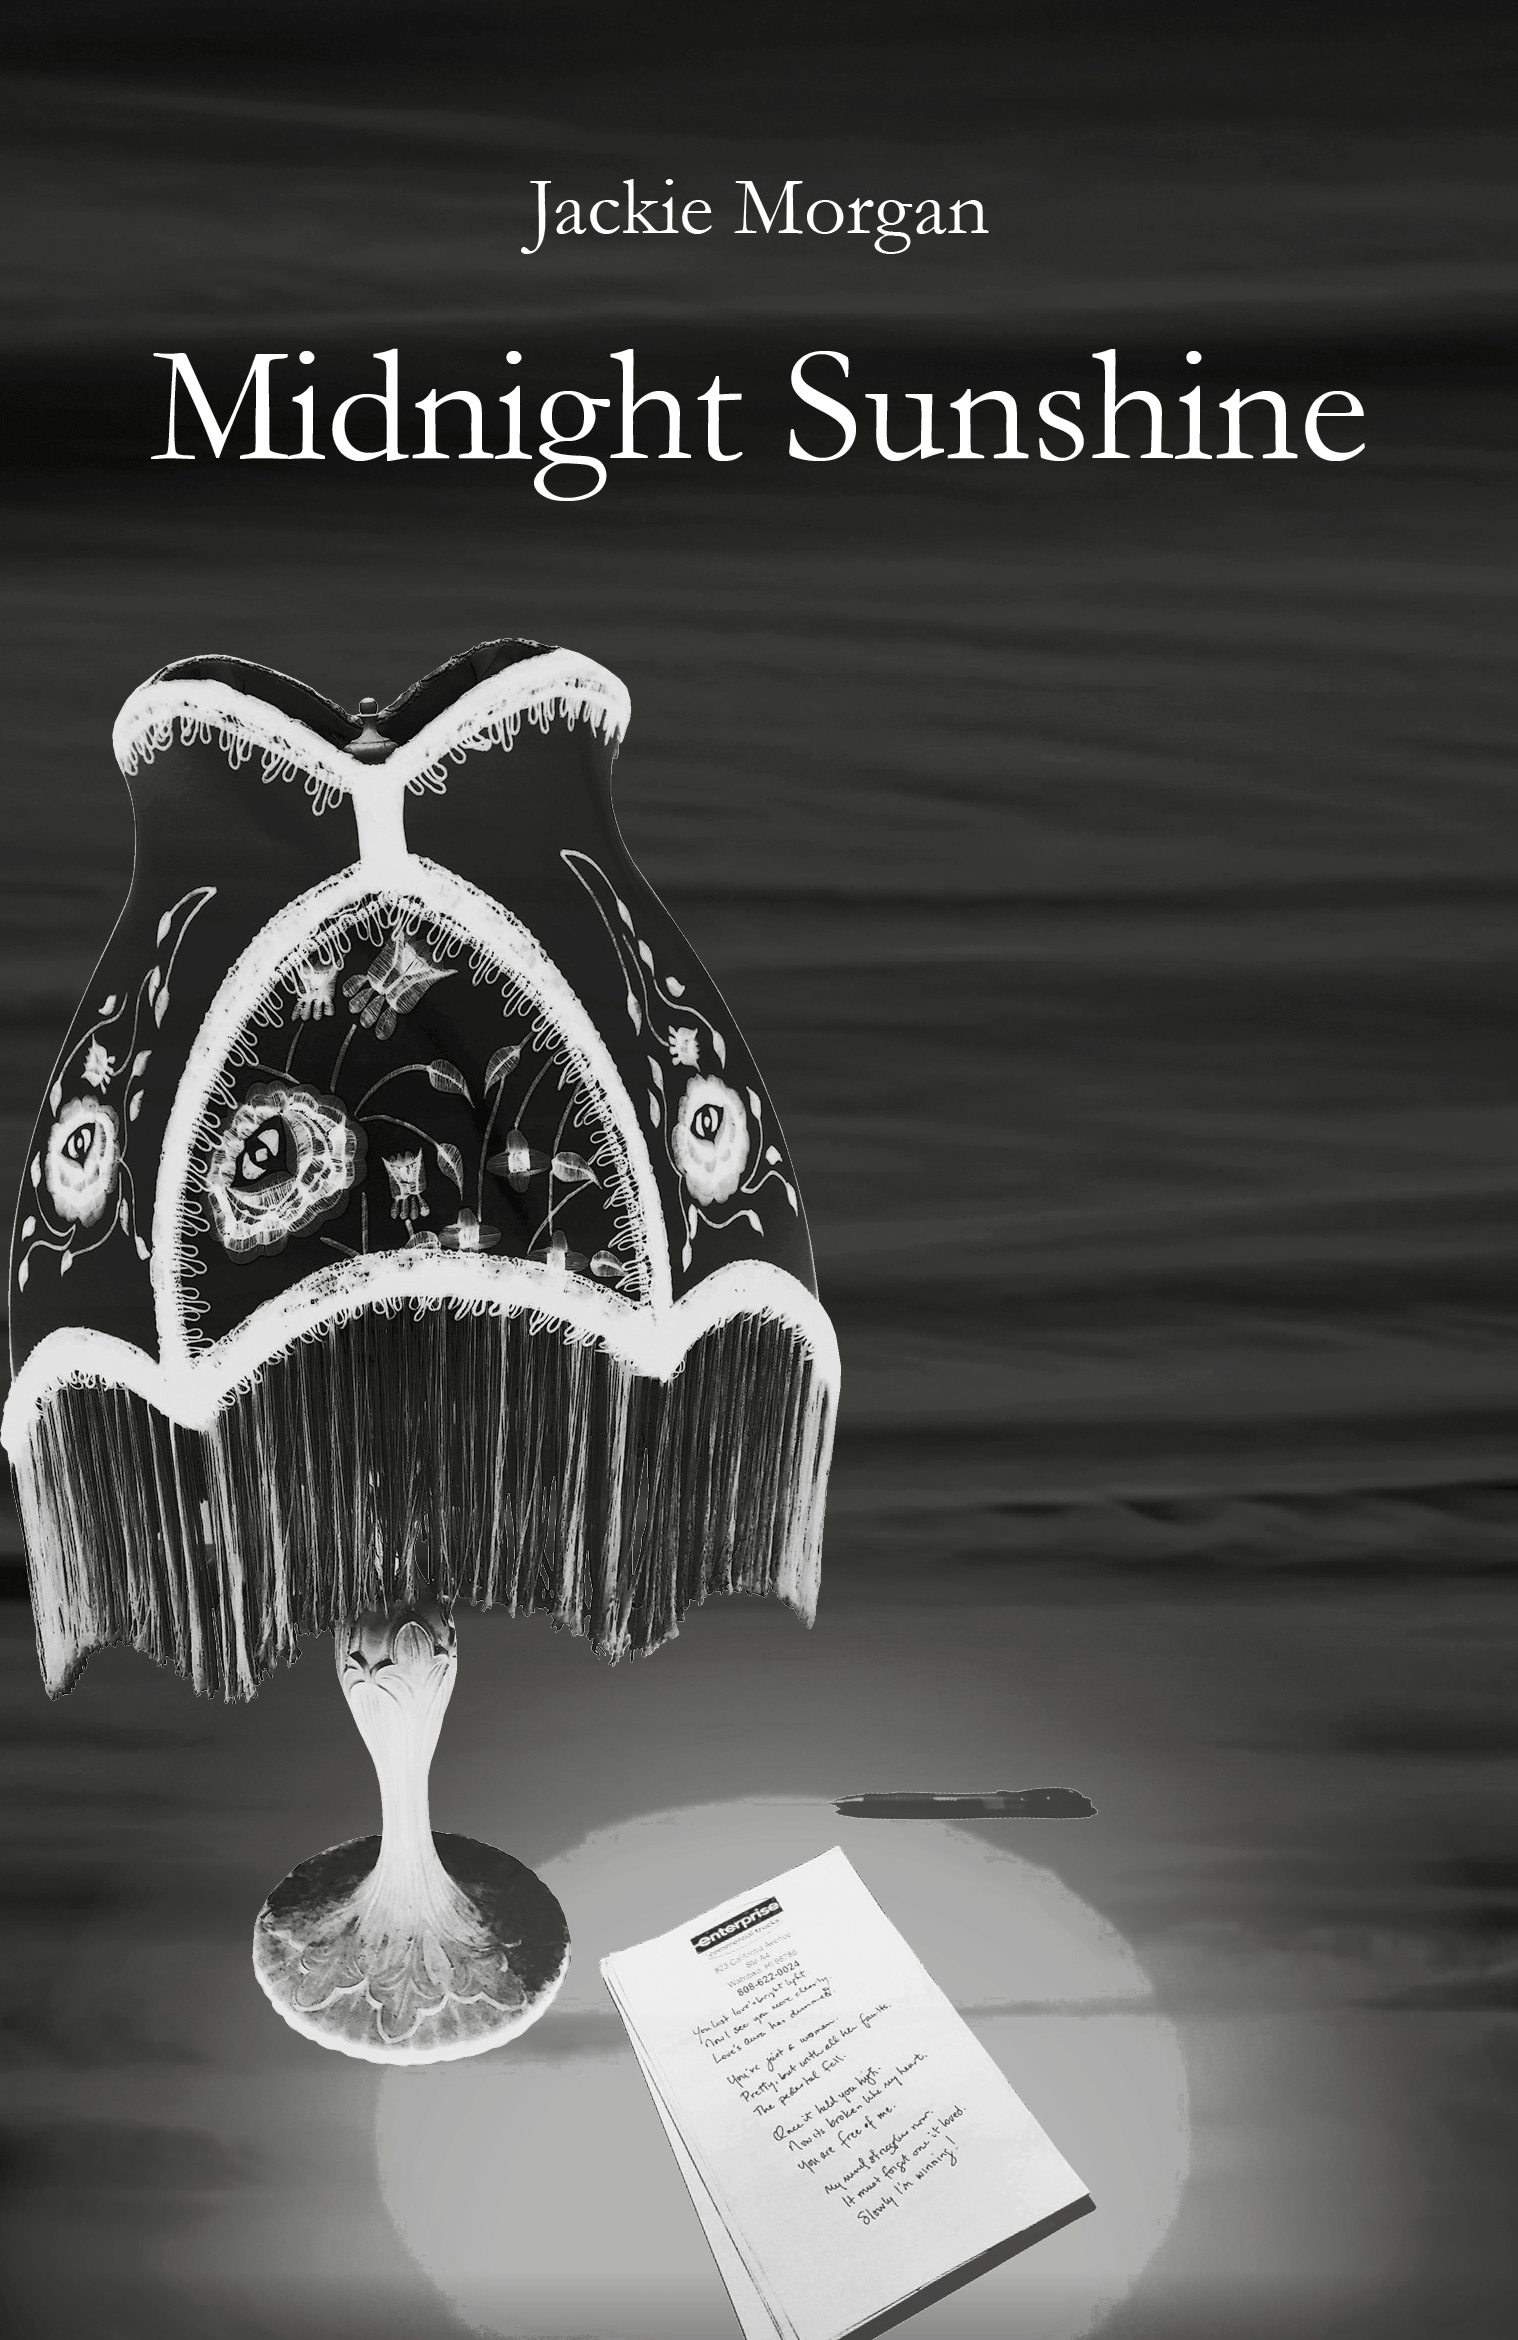 Midnight Sunshine by Jackie Morgan